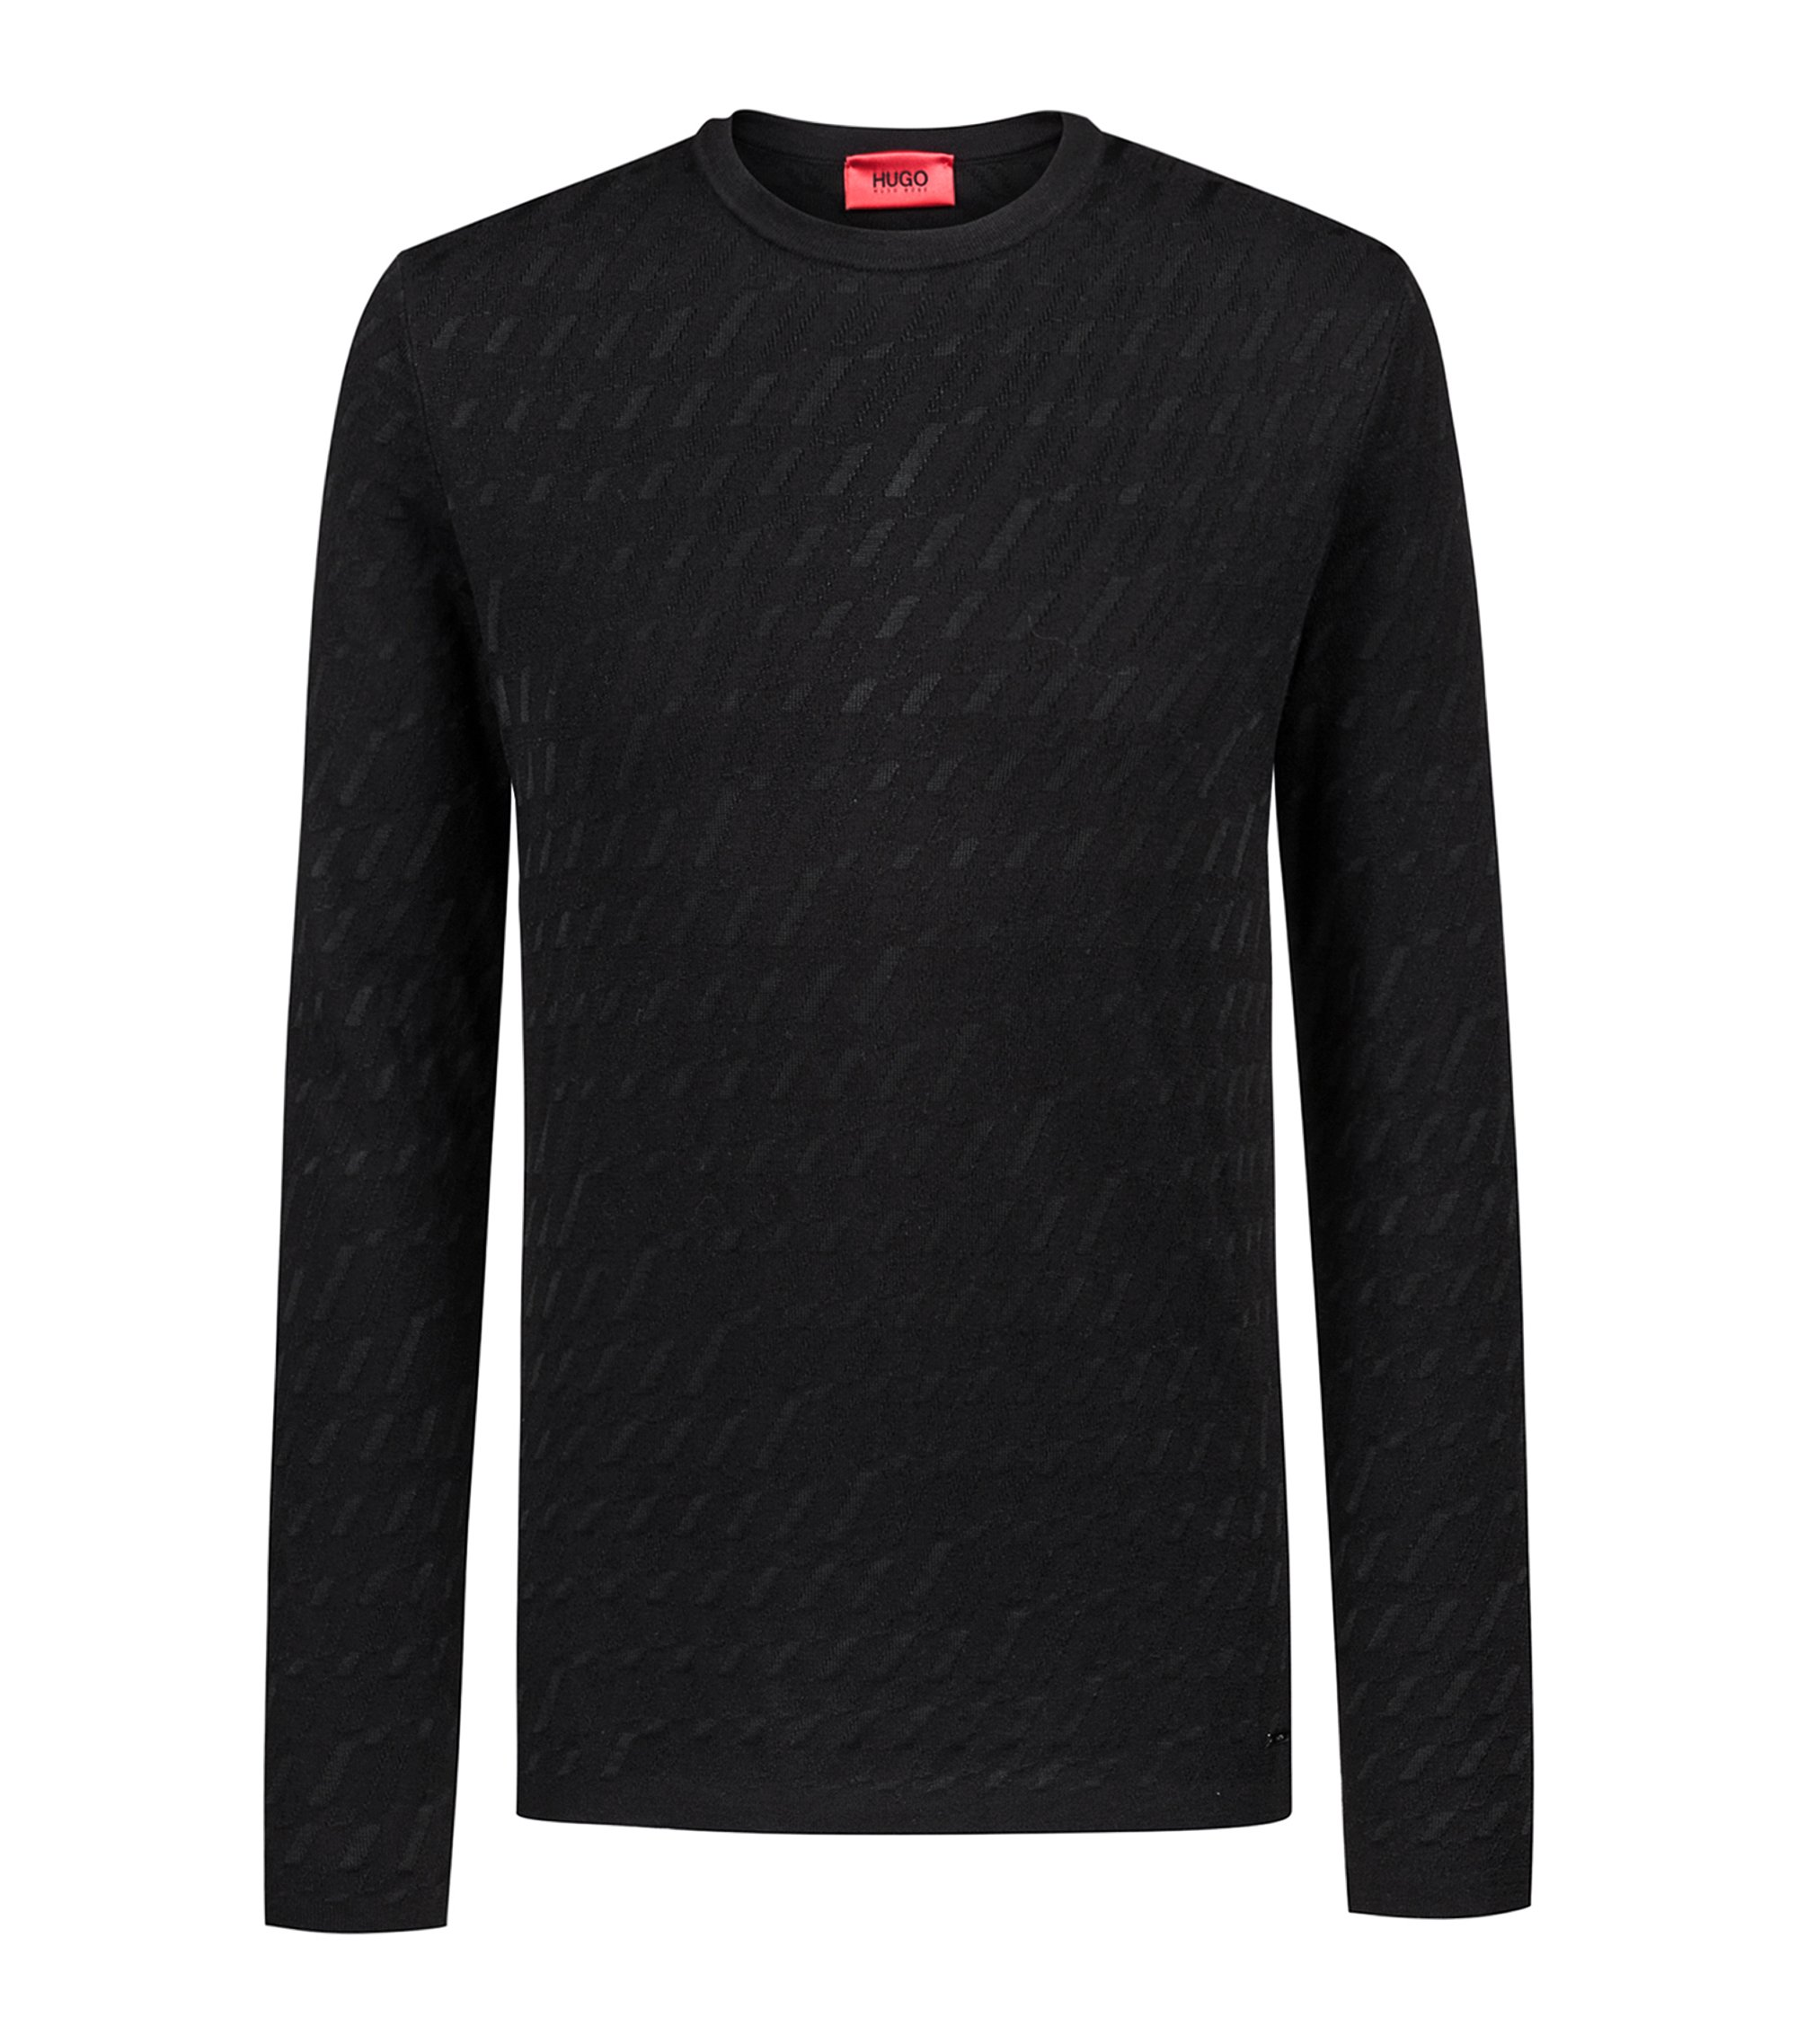 Bits & Bytes Capsule patterned crew-neck sweater, Black